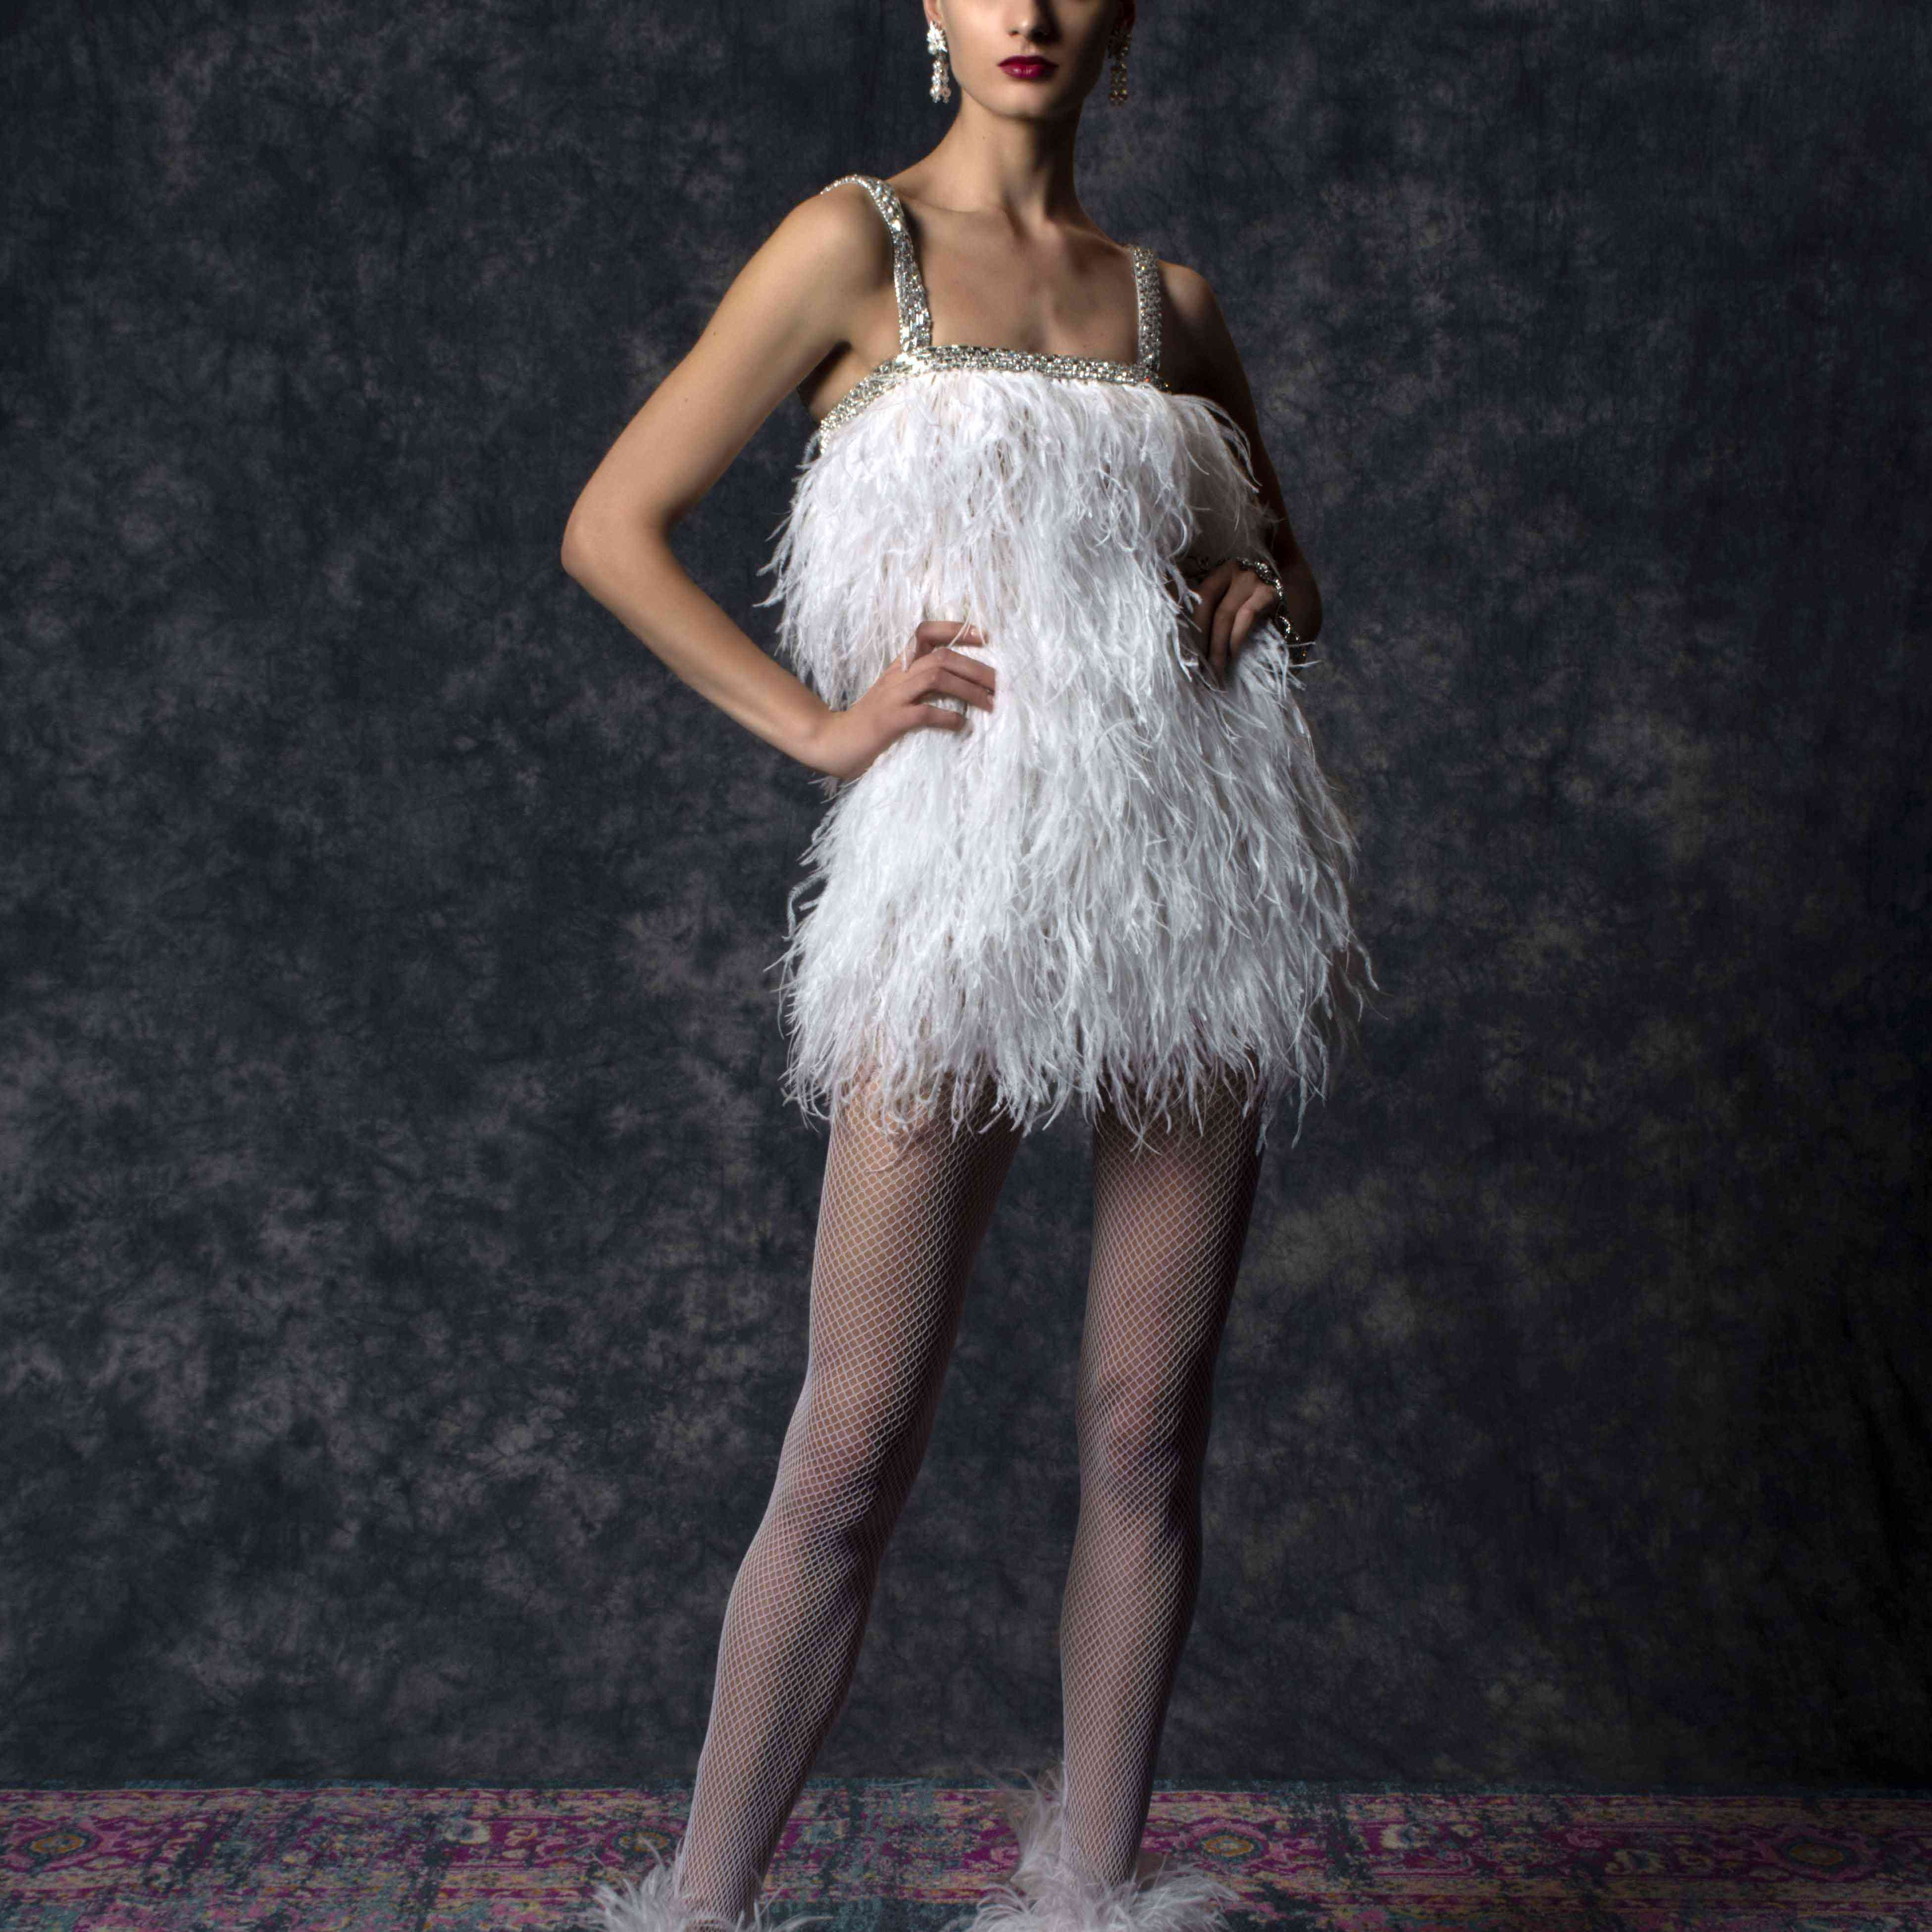 Model in mini feather dress with silver beaded straps